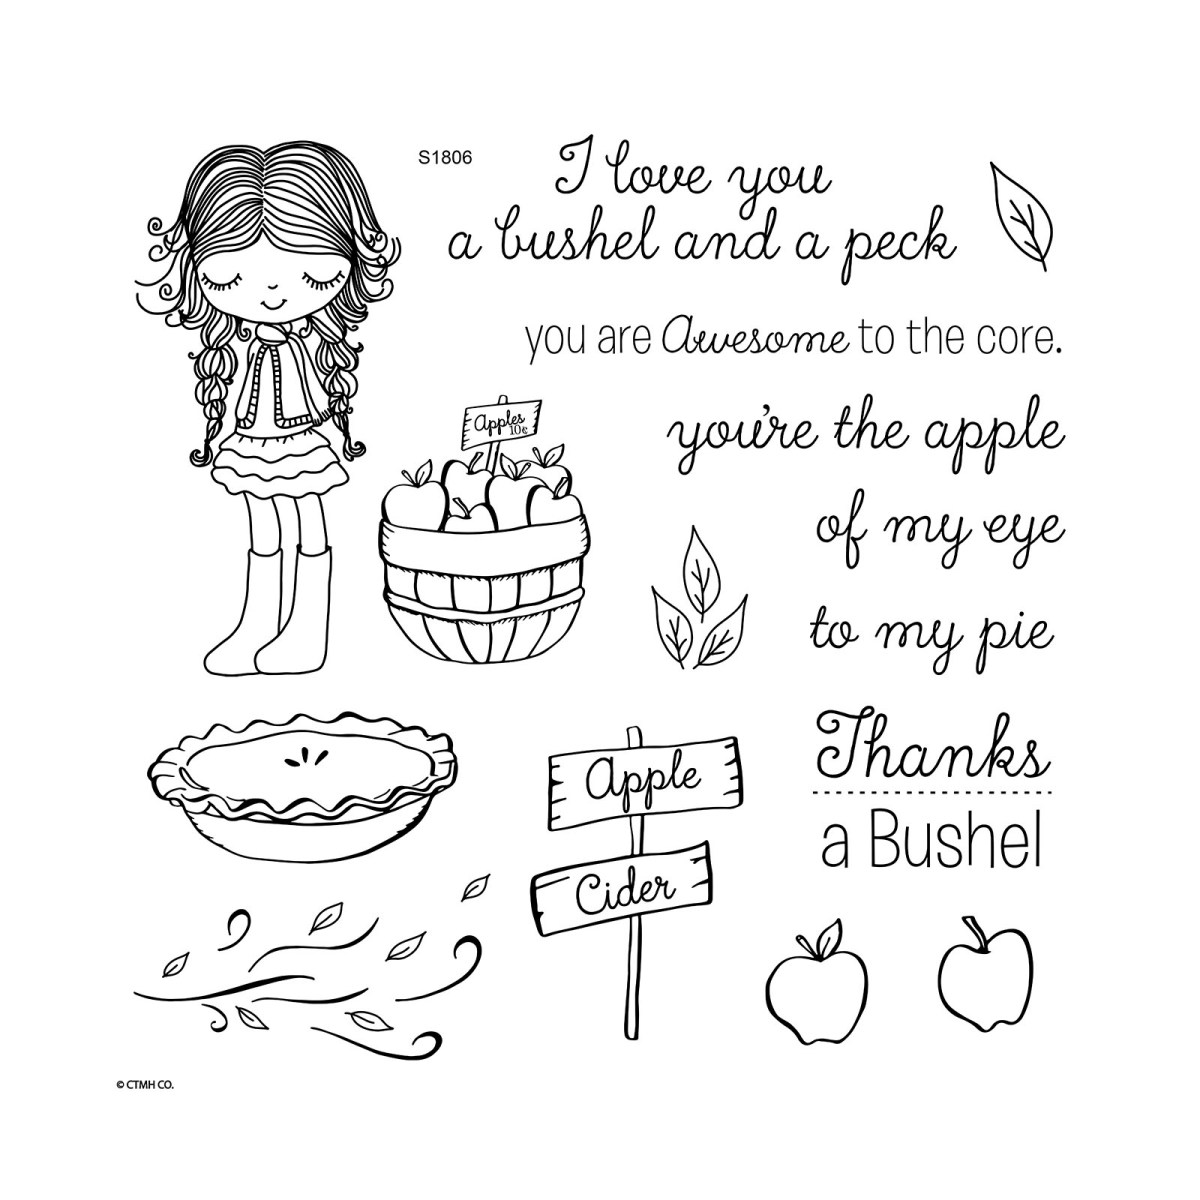 Fab Four Sign-up Special #ctmh #closetomyheart #stamp #month #sotm #bushel #peck #apples #girl #cider #pie #eye #core #harvest #awesome #fabfour #free